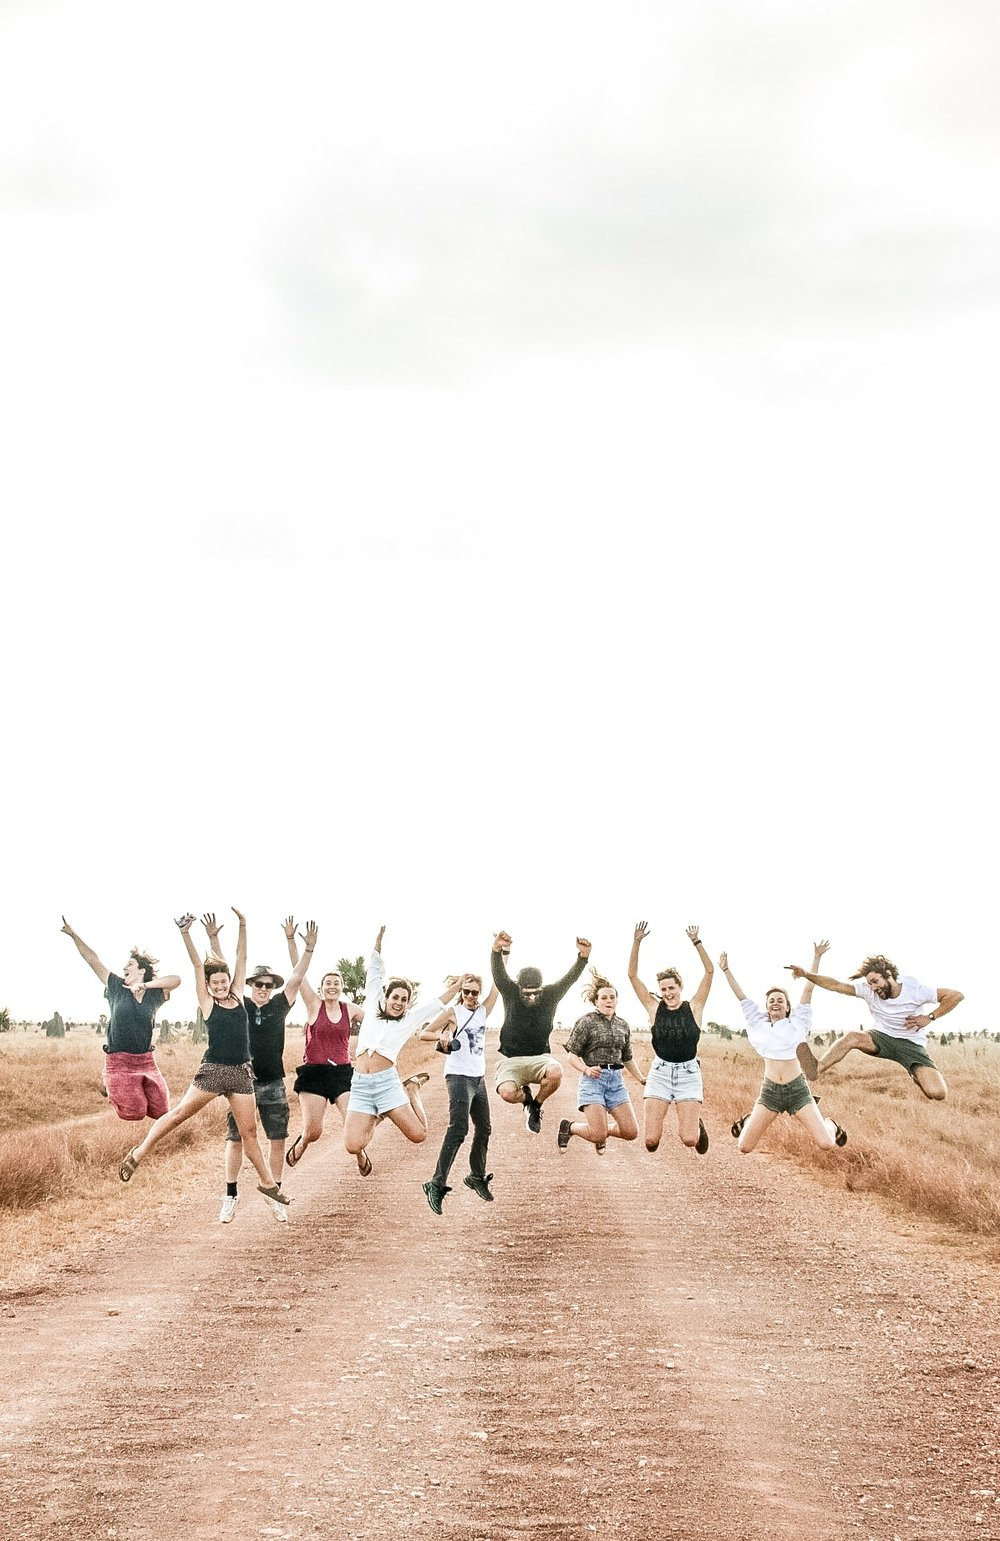 Meet the Trash Tribers! There's just too much to say about this awesome lil fam. A bunch of artists, designers, photographers, entrepreneurs and conservationists with one mission, and a passion for protecting our oceans | Photo by Jemma Scott @thesalty.dreamers | Cape York, Australia